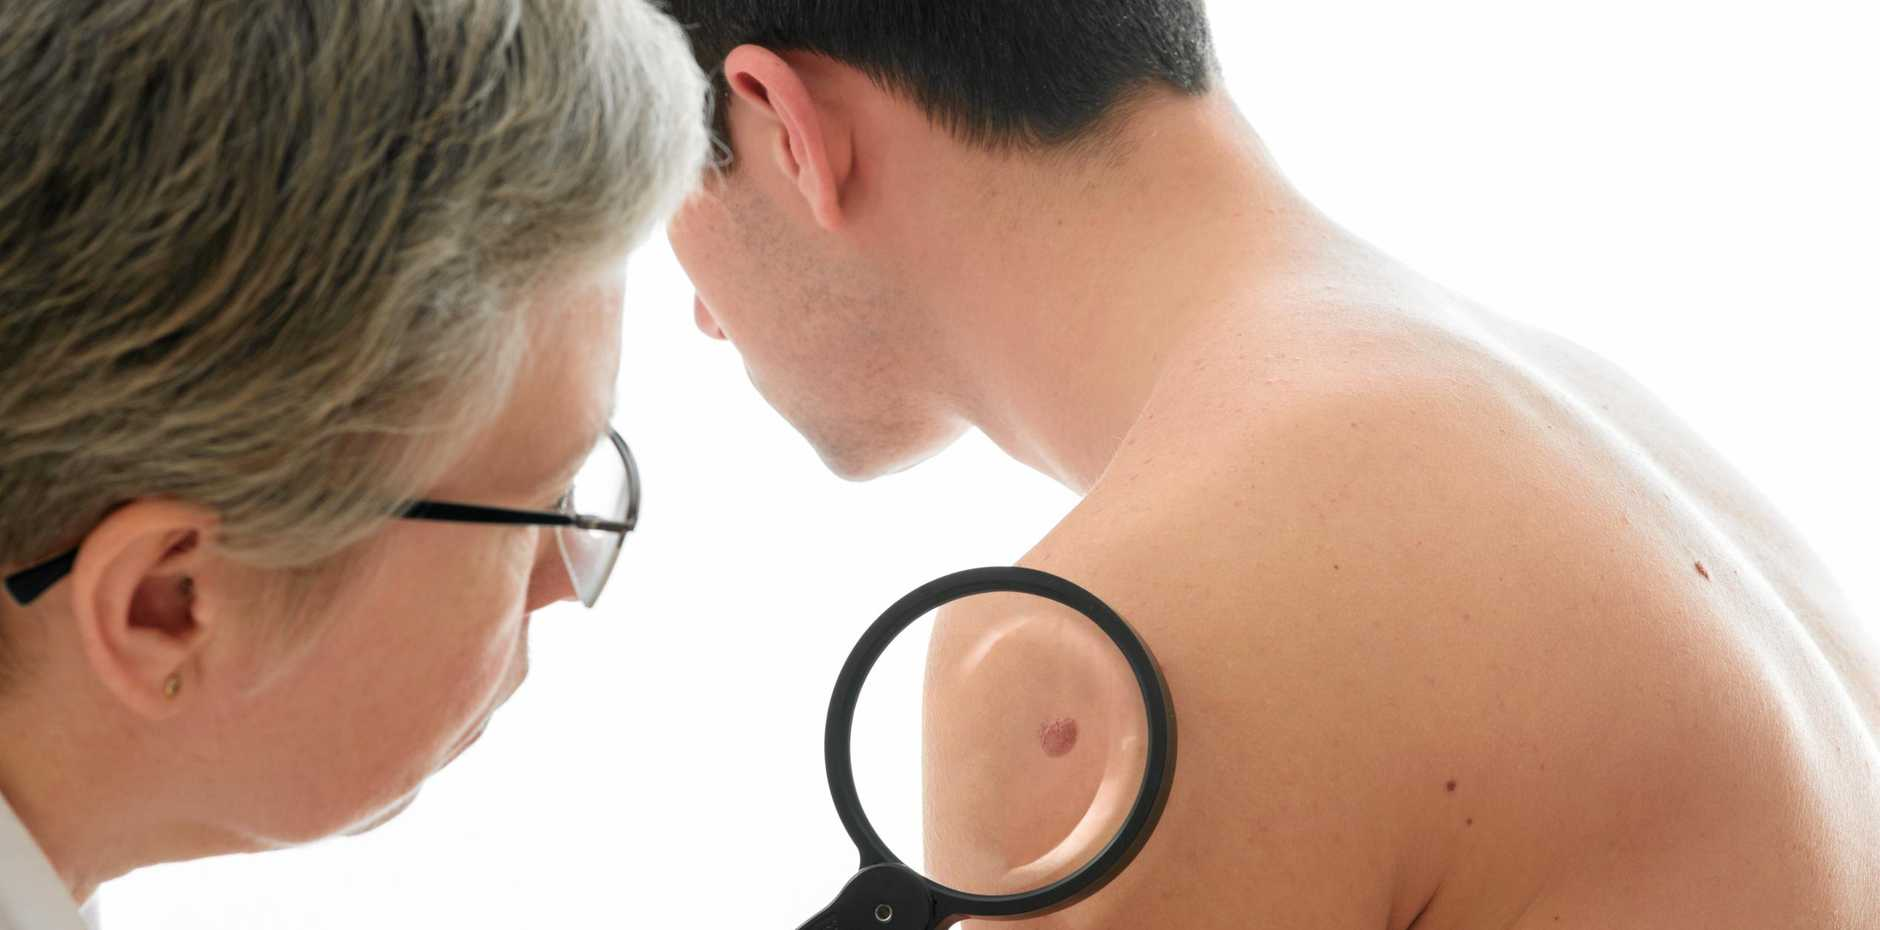 Dermatologist examines a mole of male patient